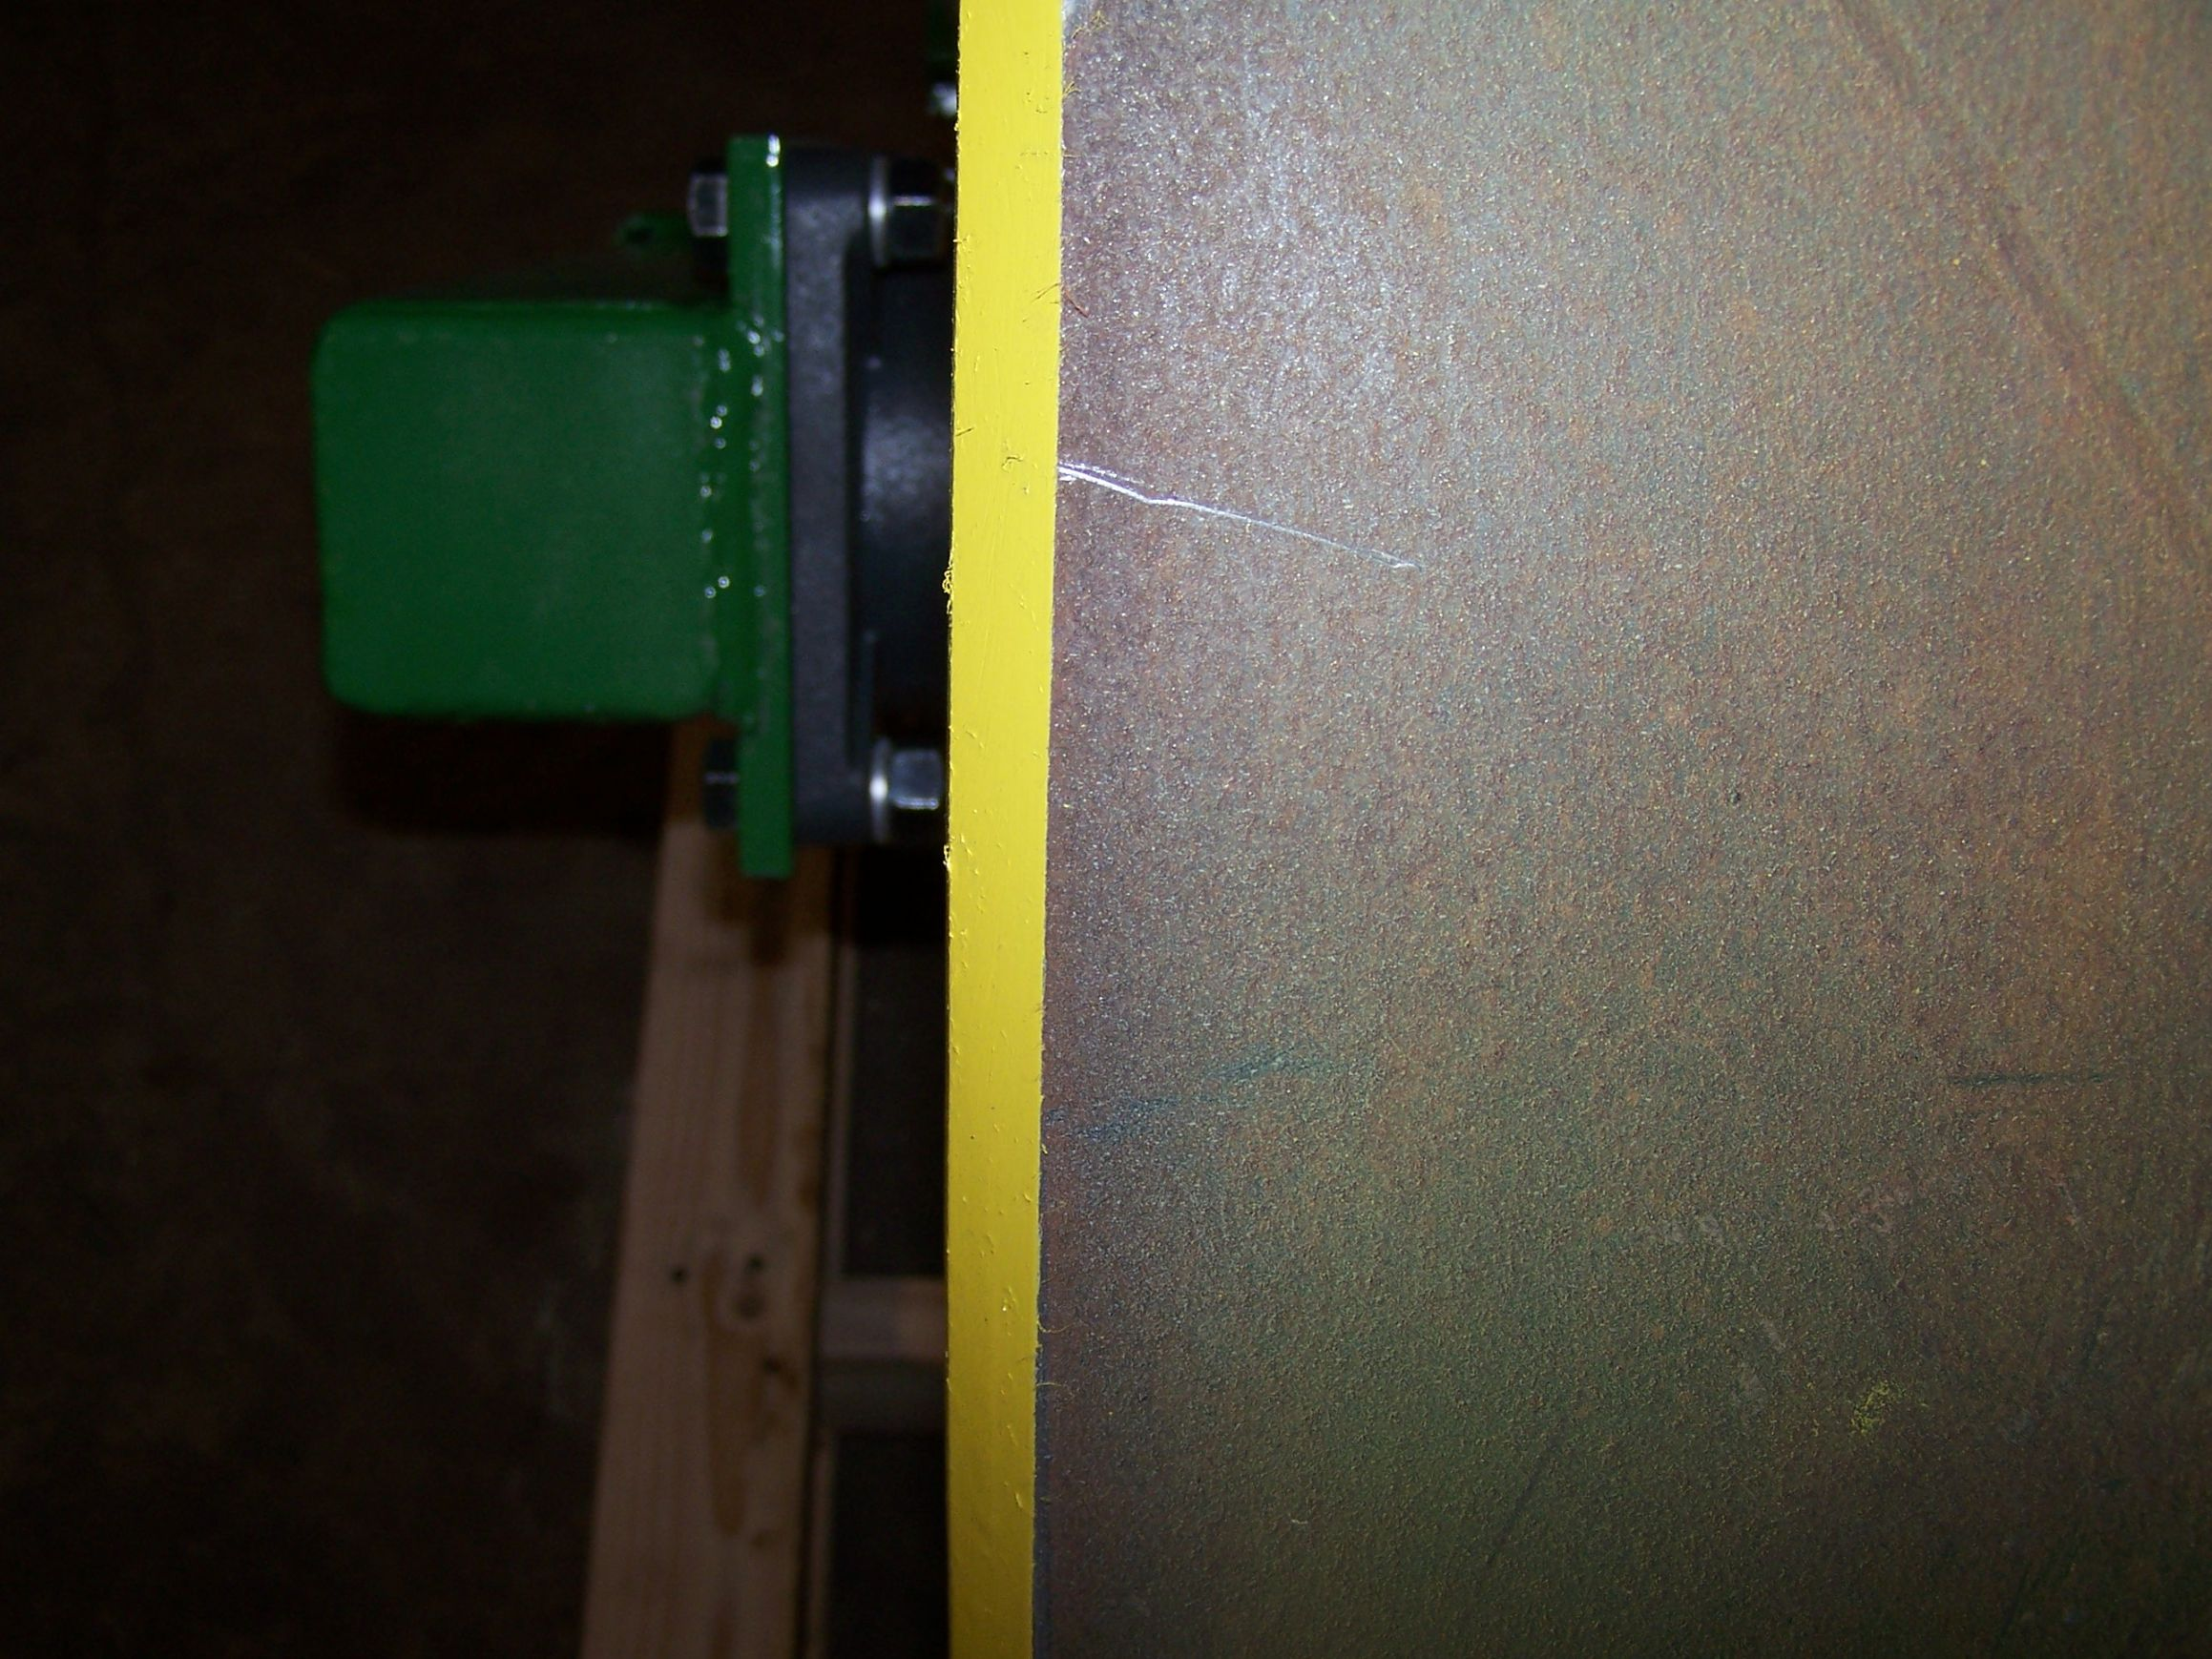 Beveled edge on drum option